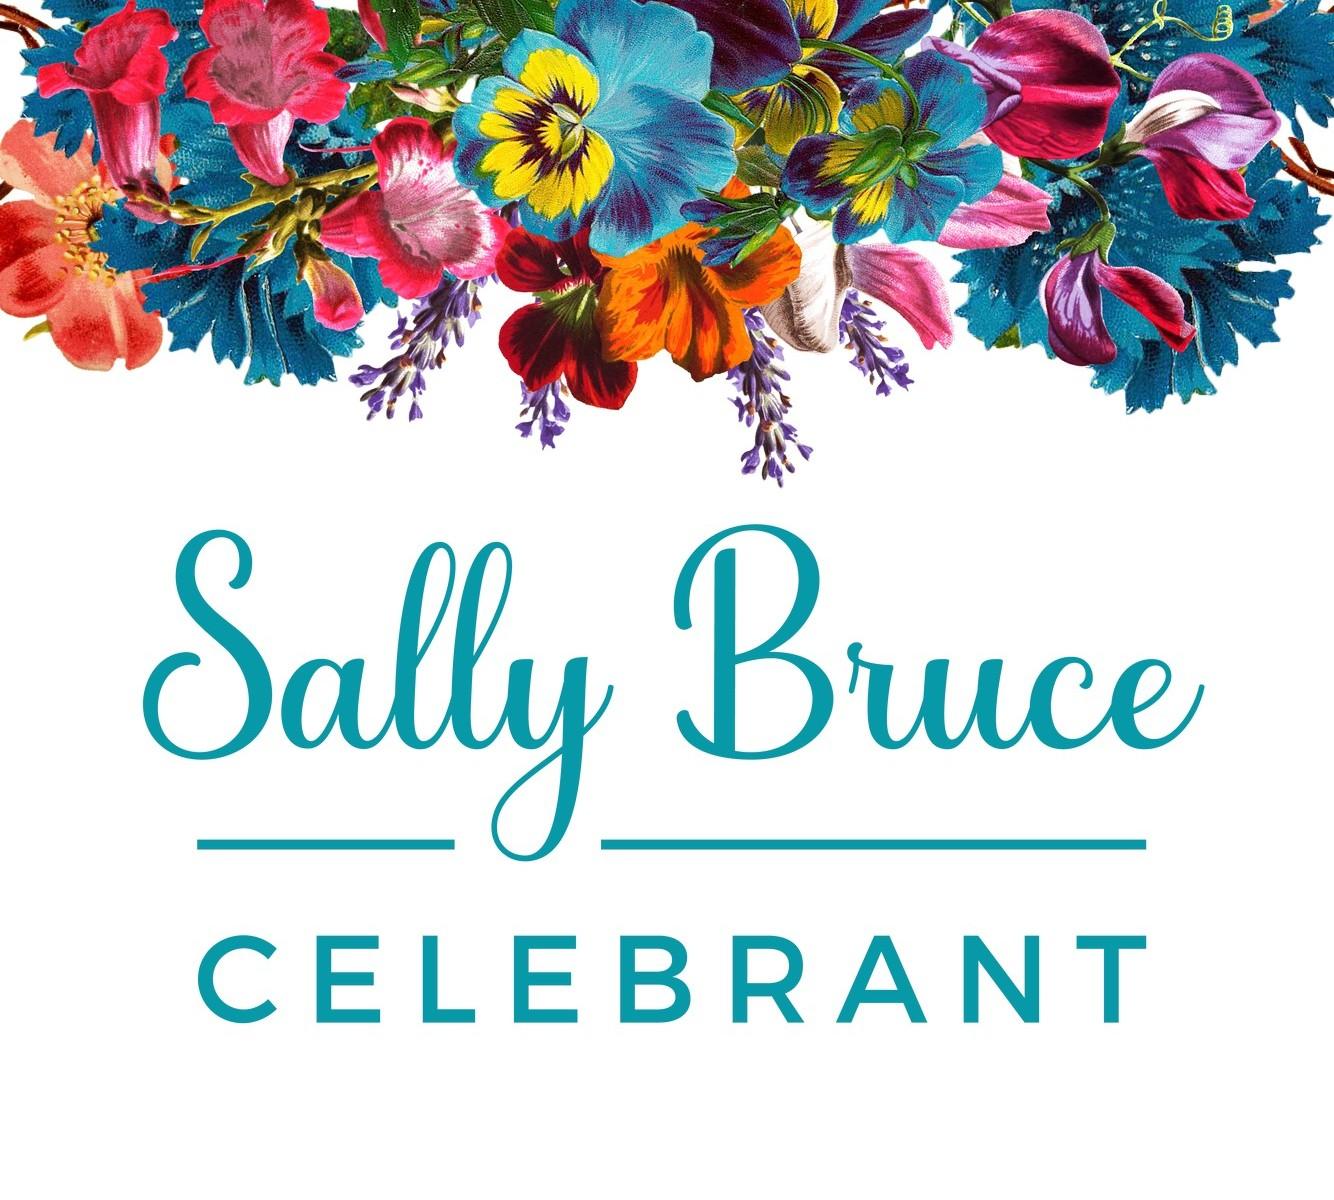 Sally Bruce Celebrant specialises in eco-conscious, Earth-friendly ceremonies in Perth, WA